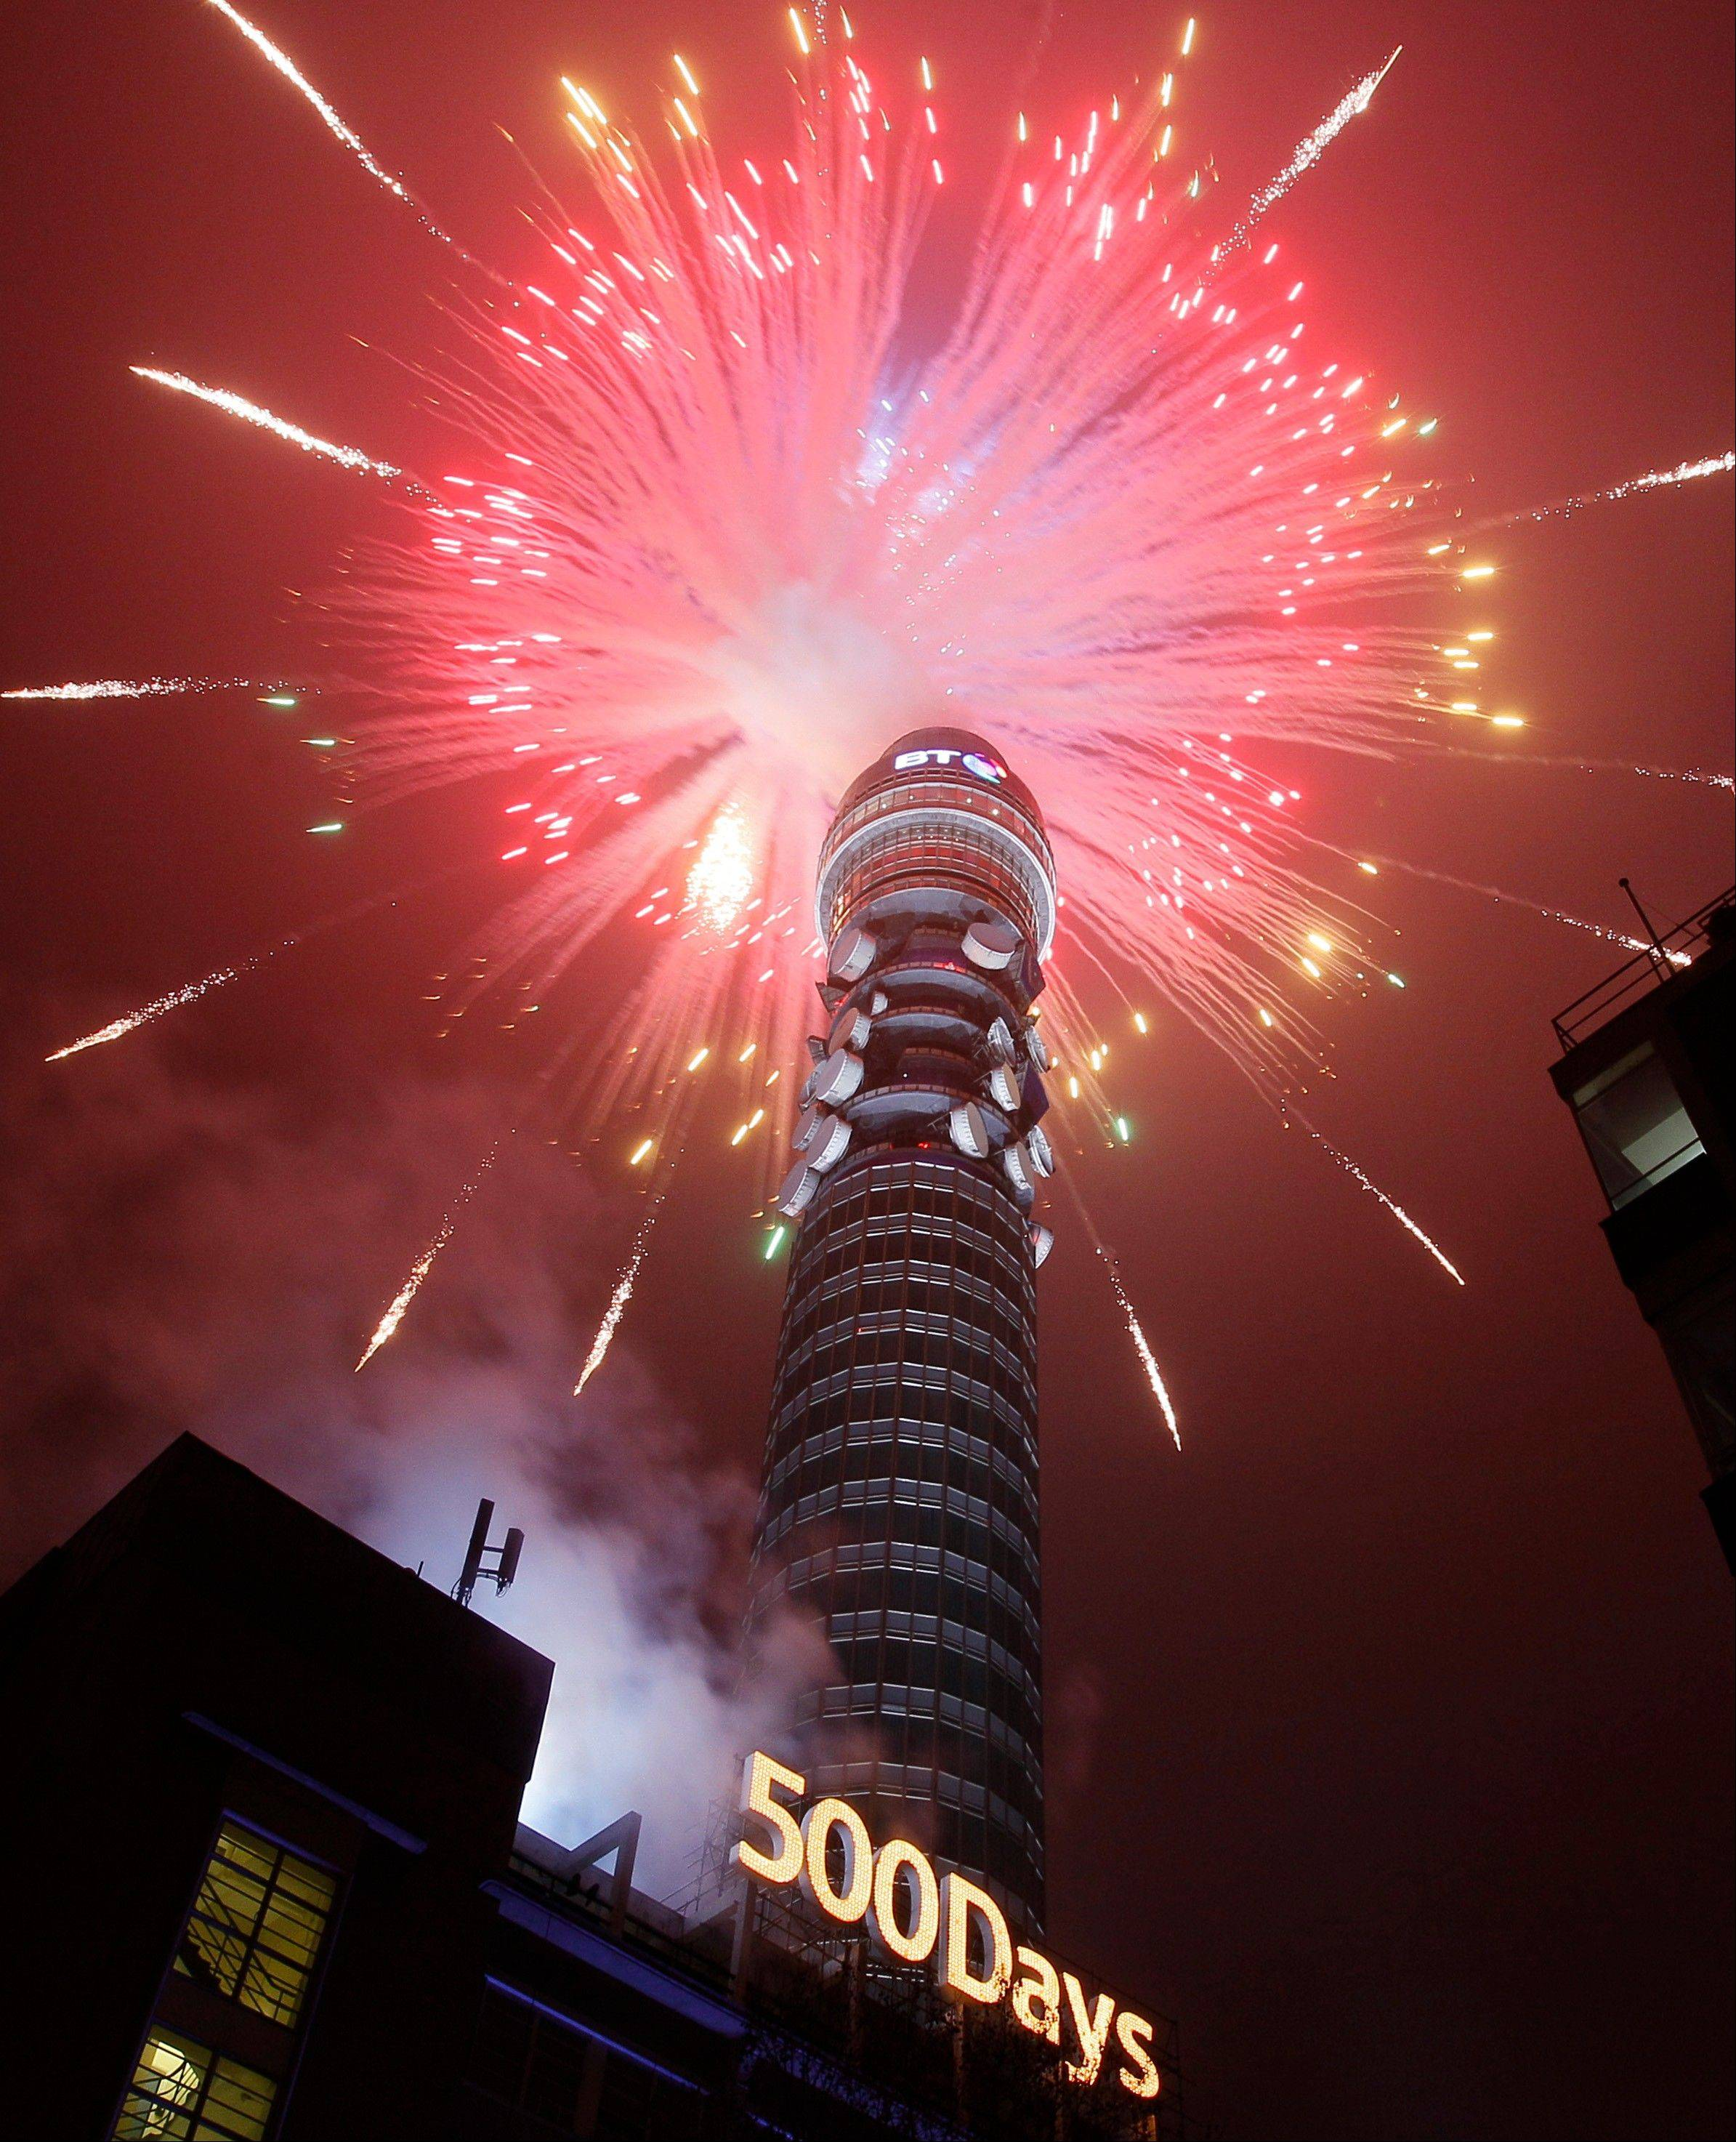 Fireworks light up the BT telecom tower in central London during a 500-days-to-go celebration until the start of the 2012 Olympic Games.